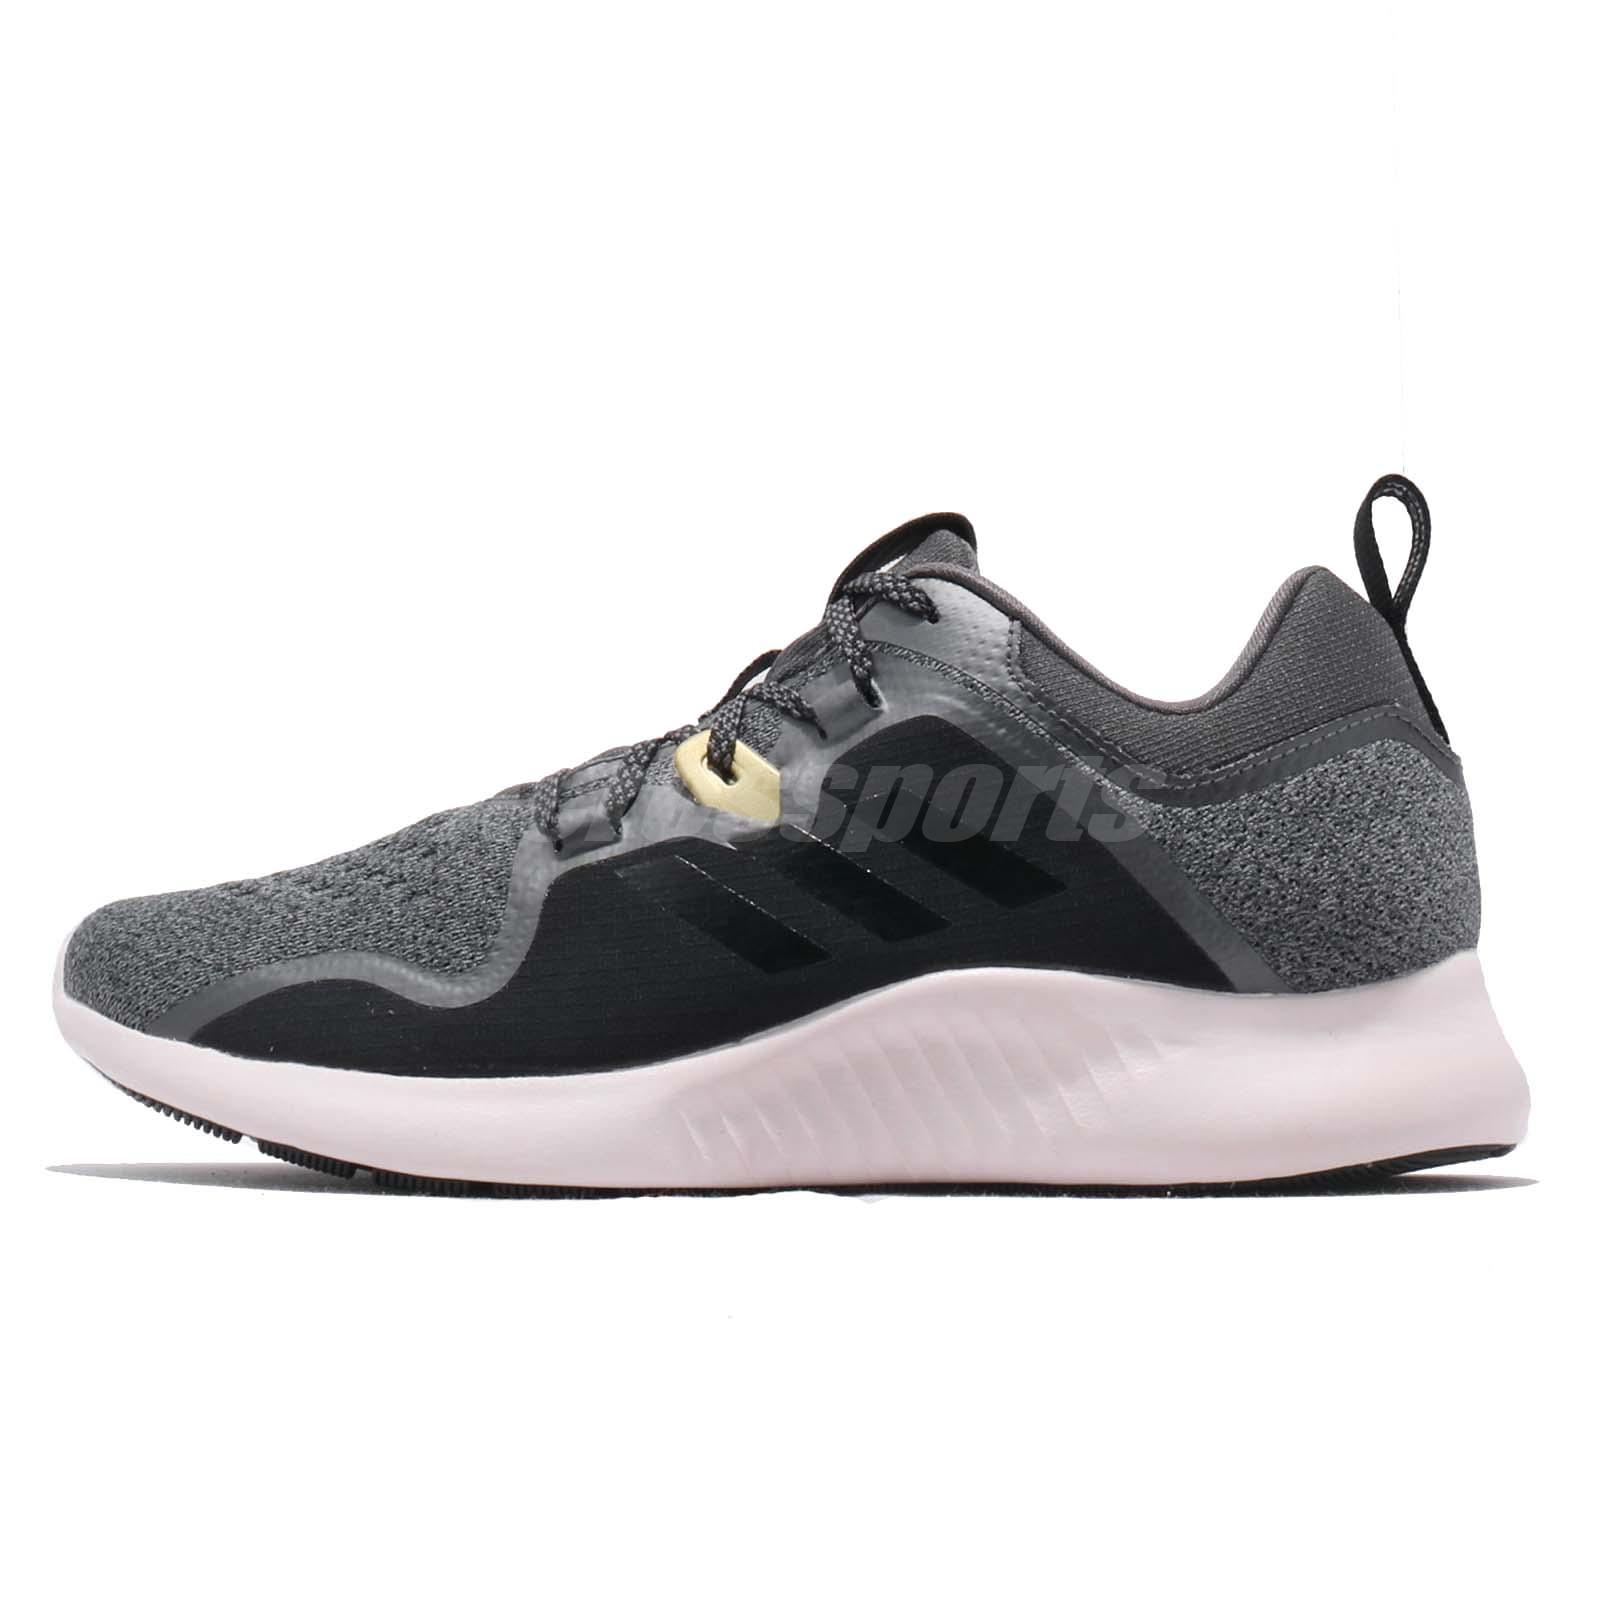 super popular 62088 85ae8 adidas Edgebounce W Black Grey Orchid Tint Women Running Shoes Sneakers  BC1050